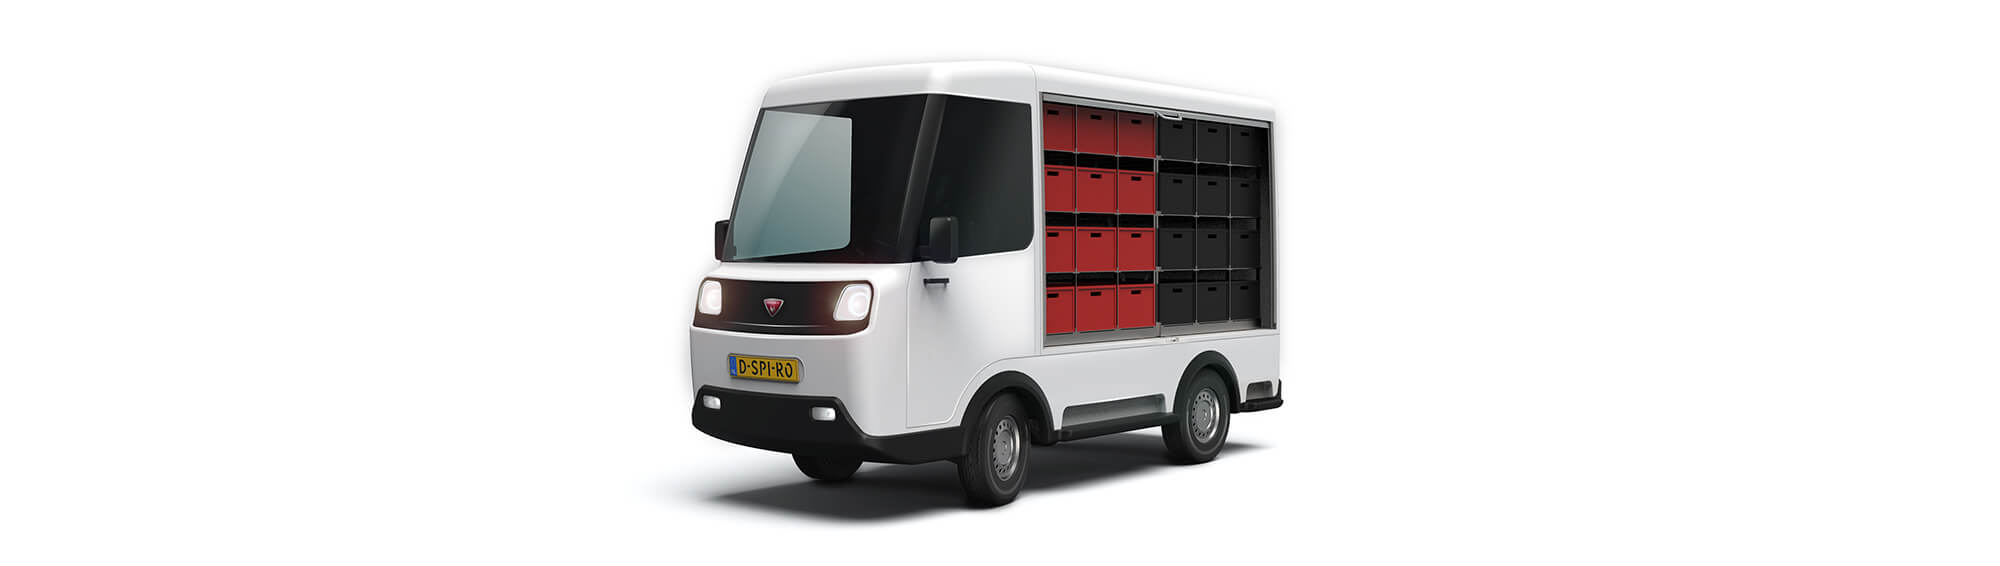 David Spiro Electric delivery van_side open